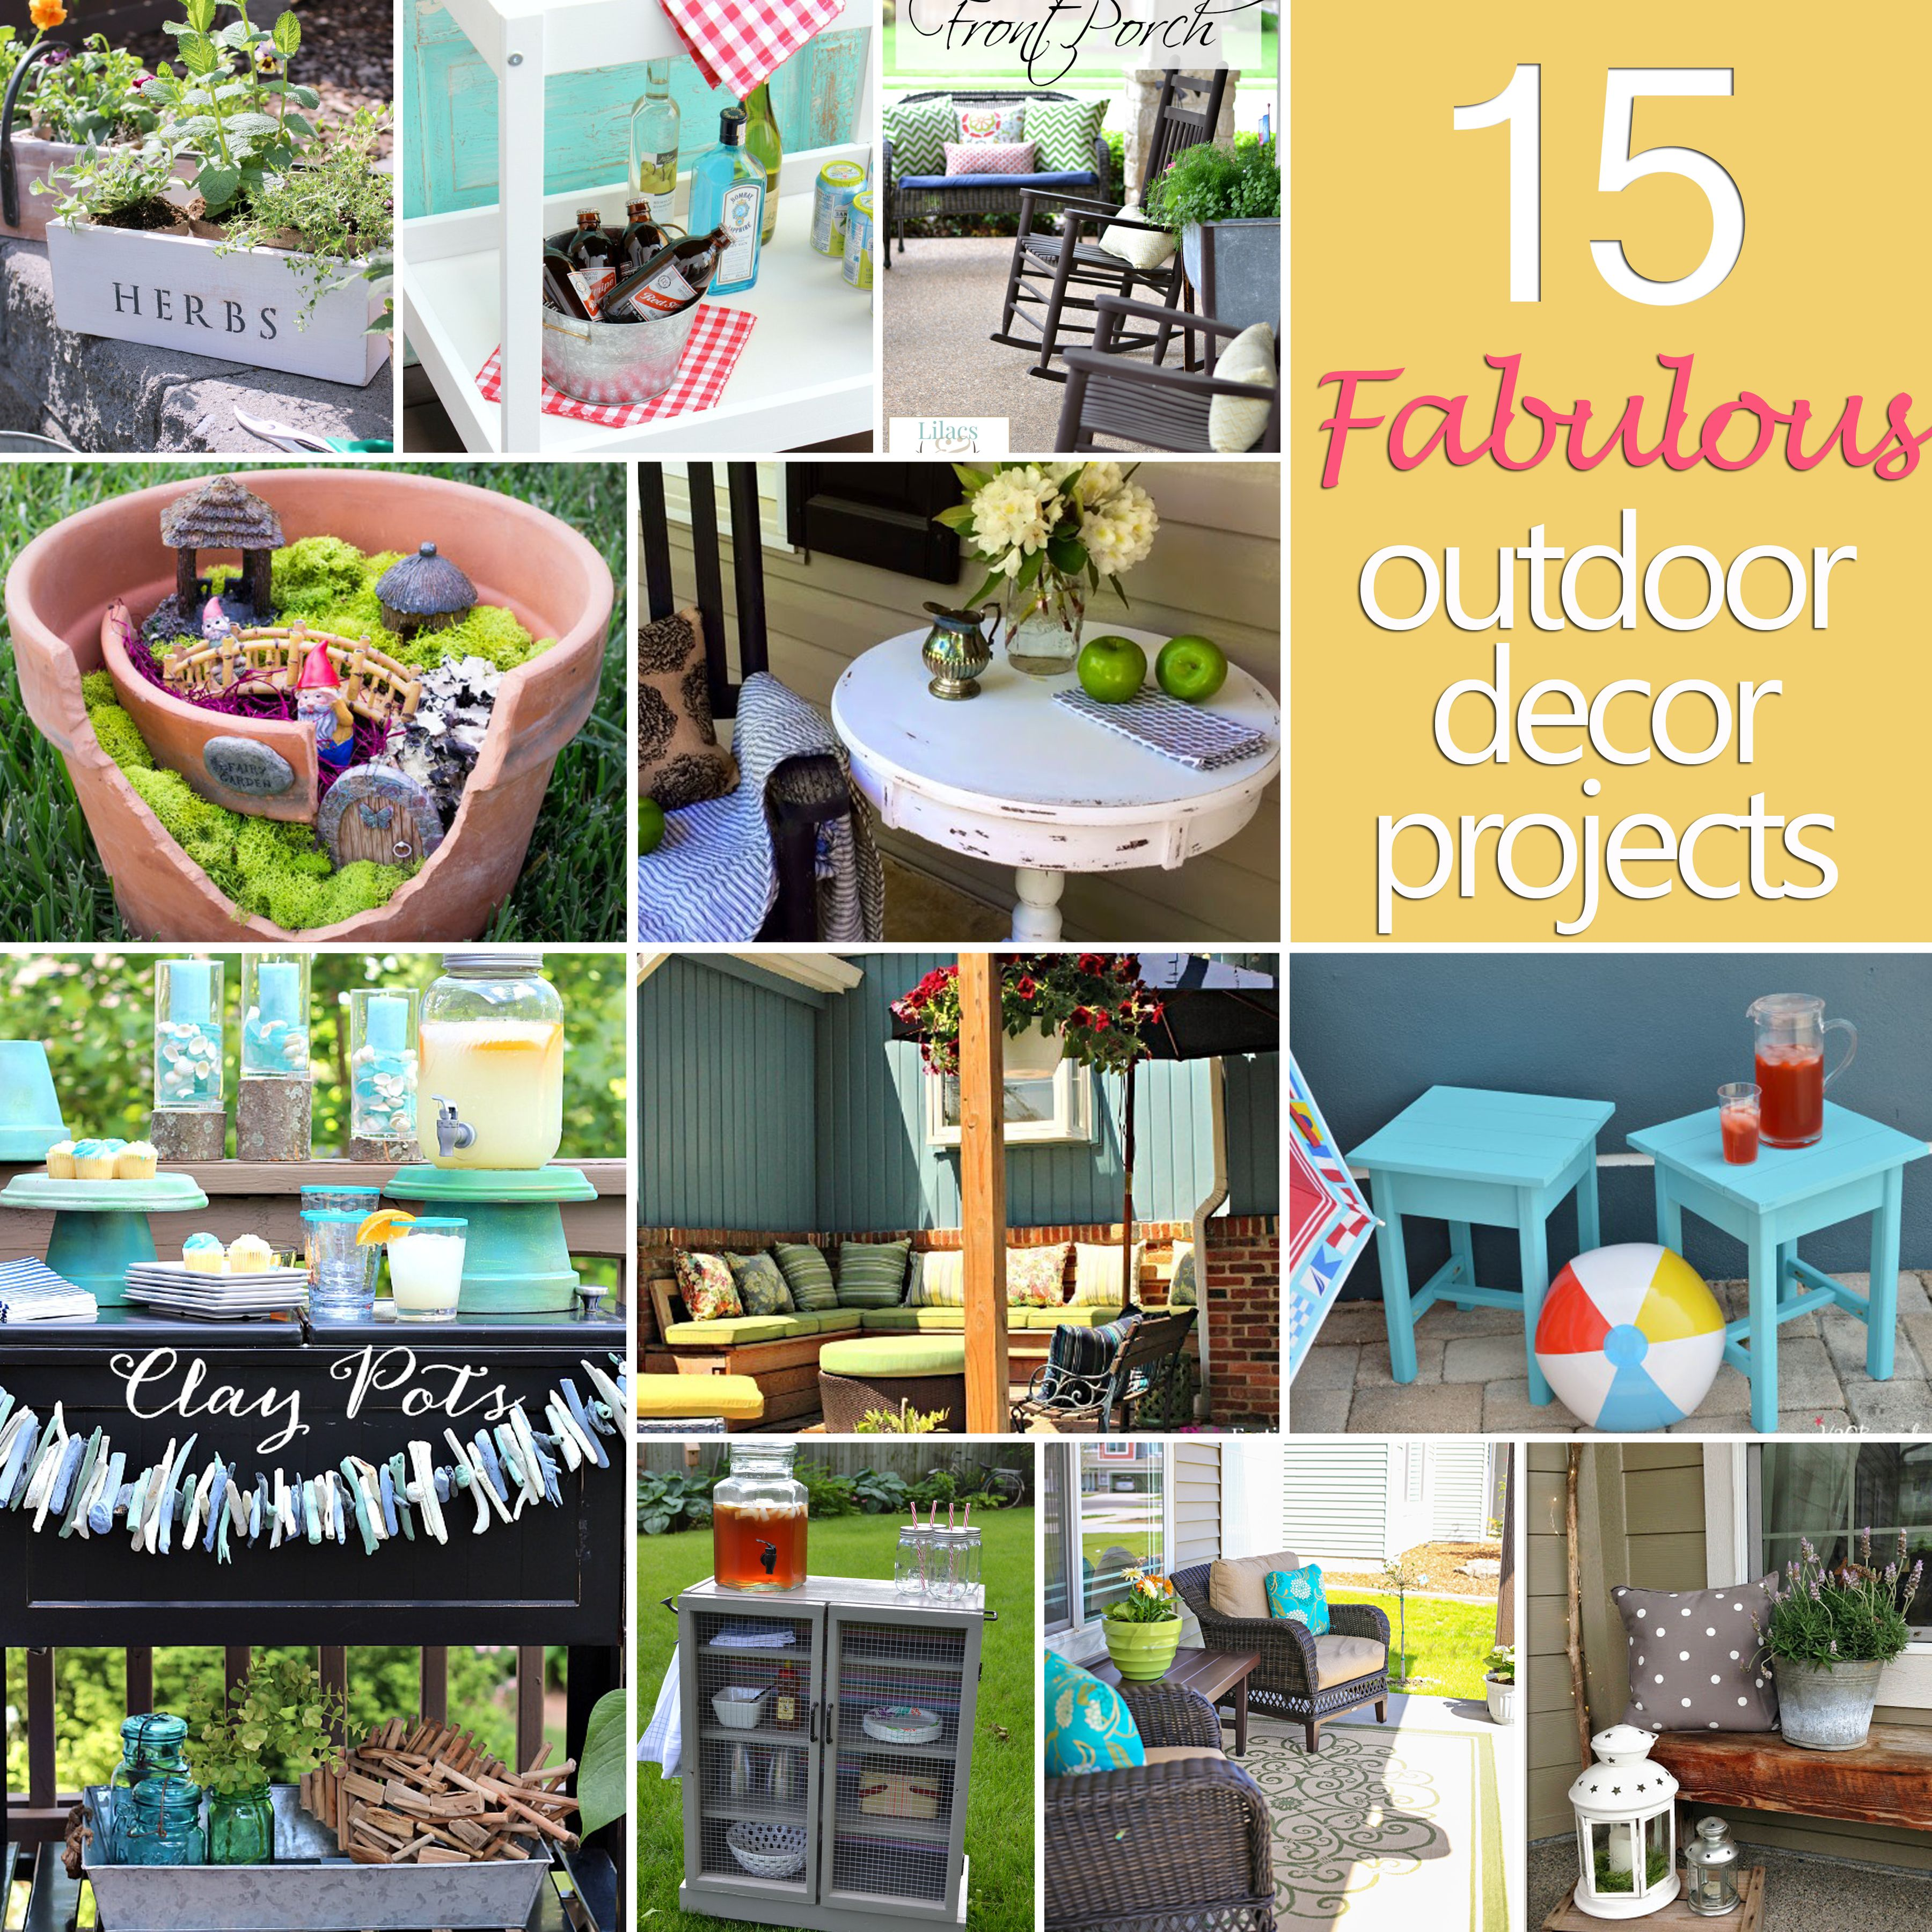 52 Vivacious Summer Porch Decor Ideas: 15 Fabulous Outdoor Decor Projects {DIY Challenge Features